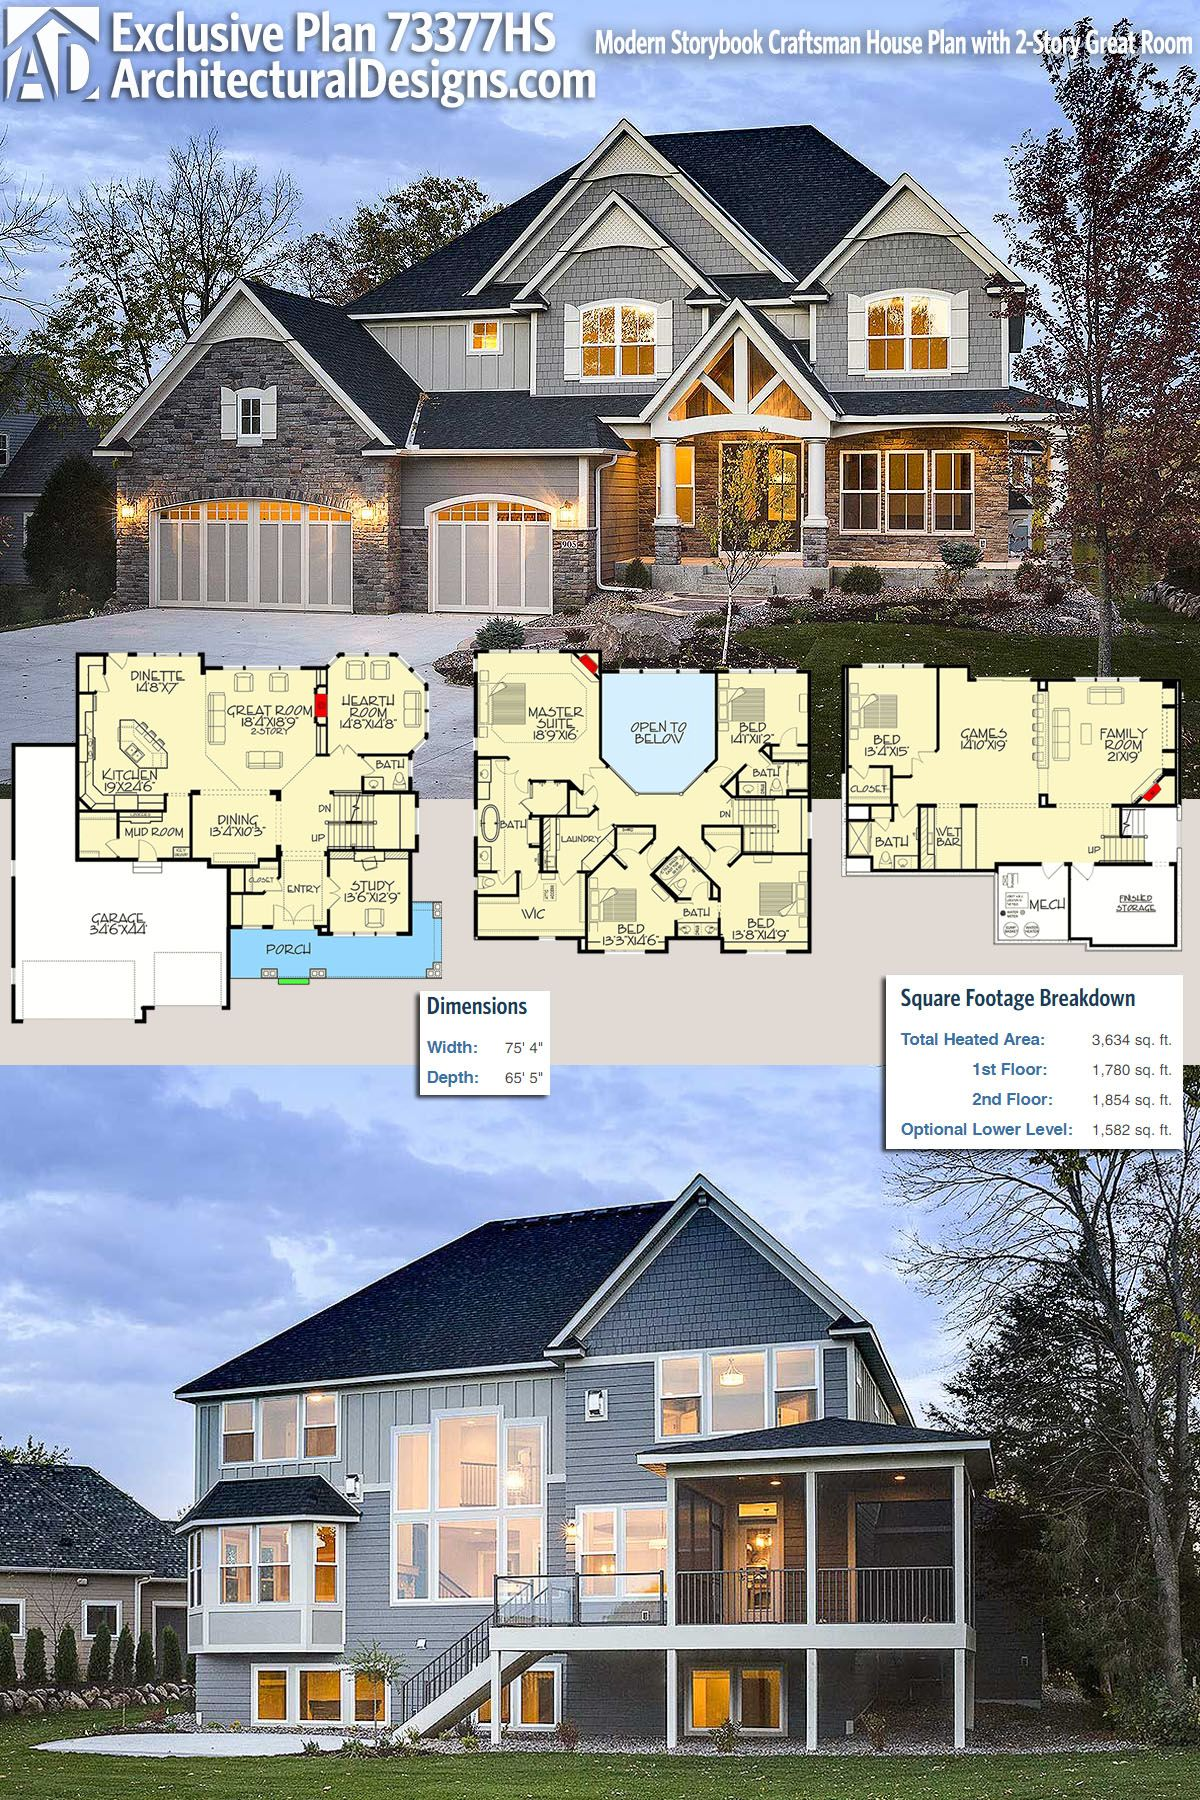 Architectural Designs Exclusive Craftsman House Plan 73377HS